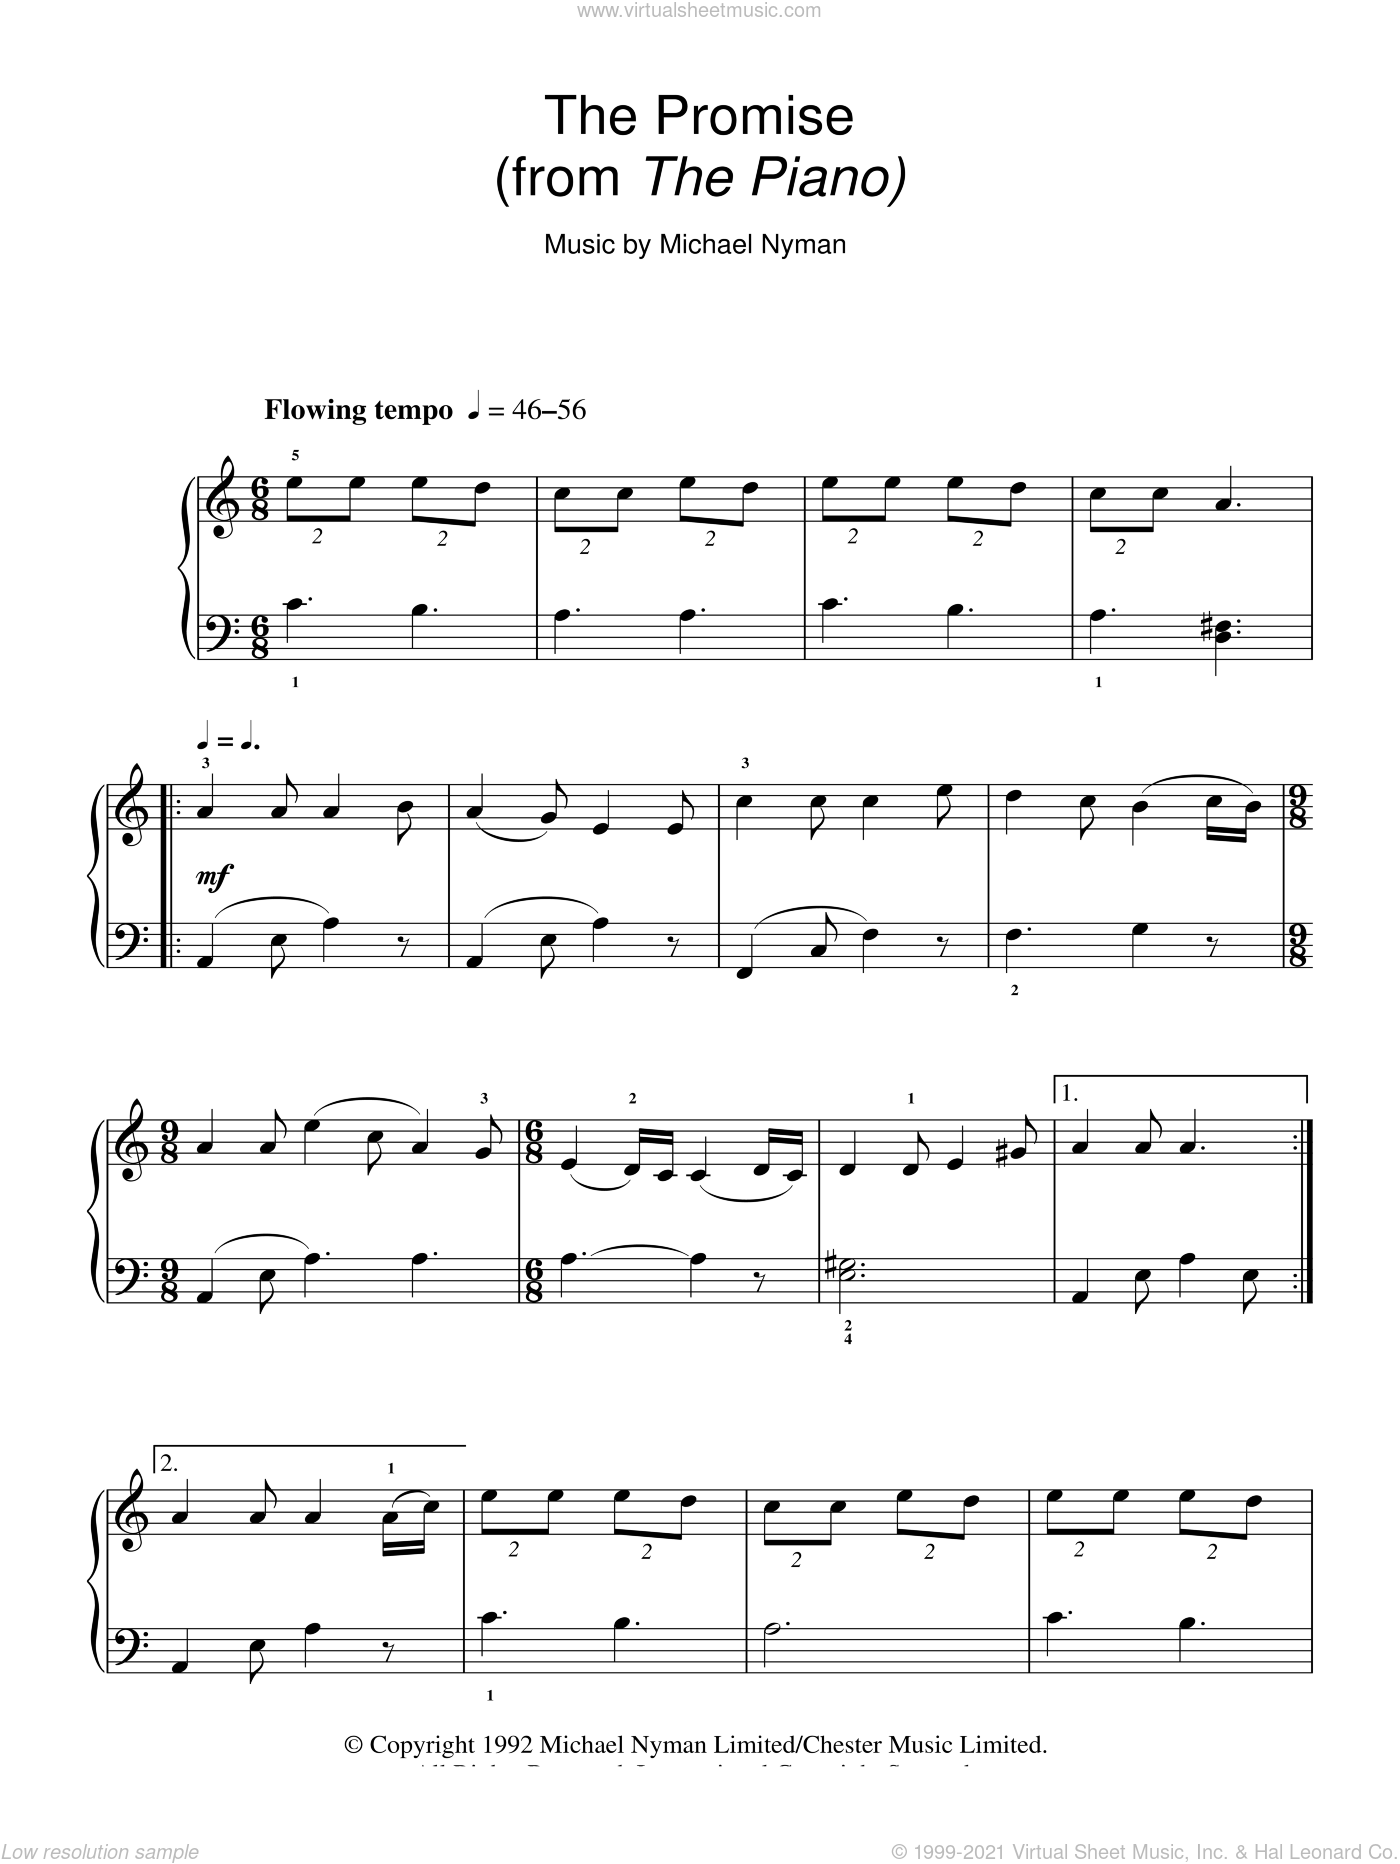 The Promise sheet music for piano solo by Michael Nyman